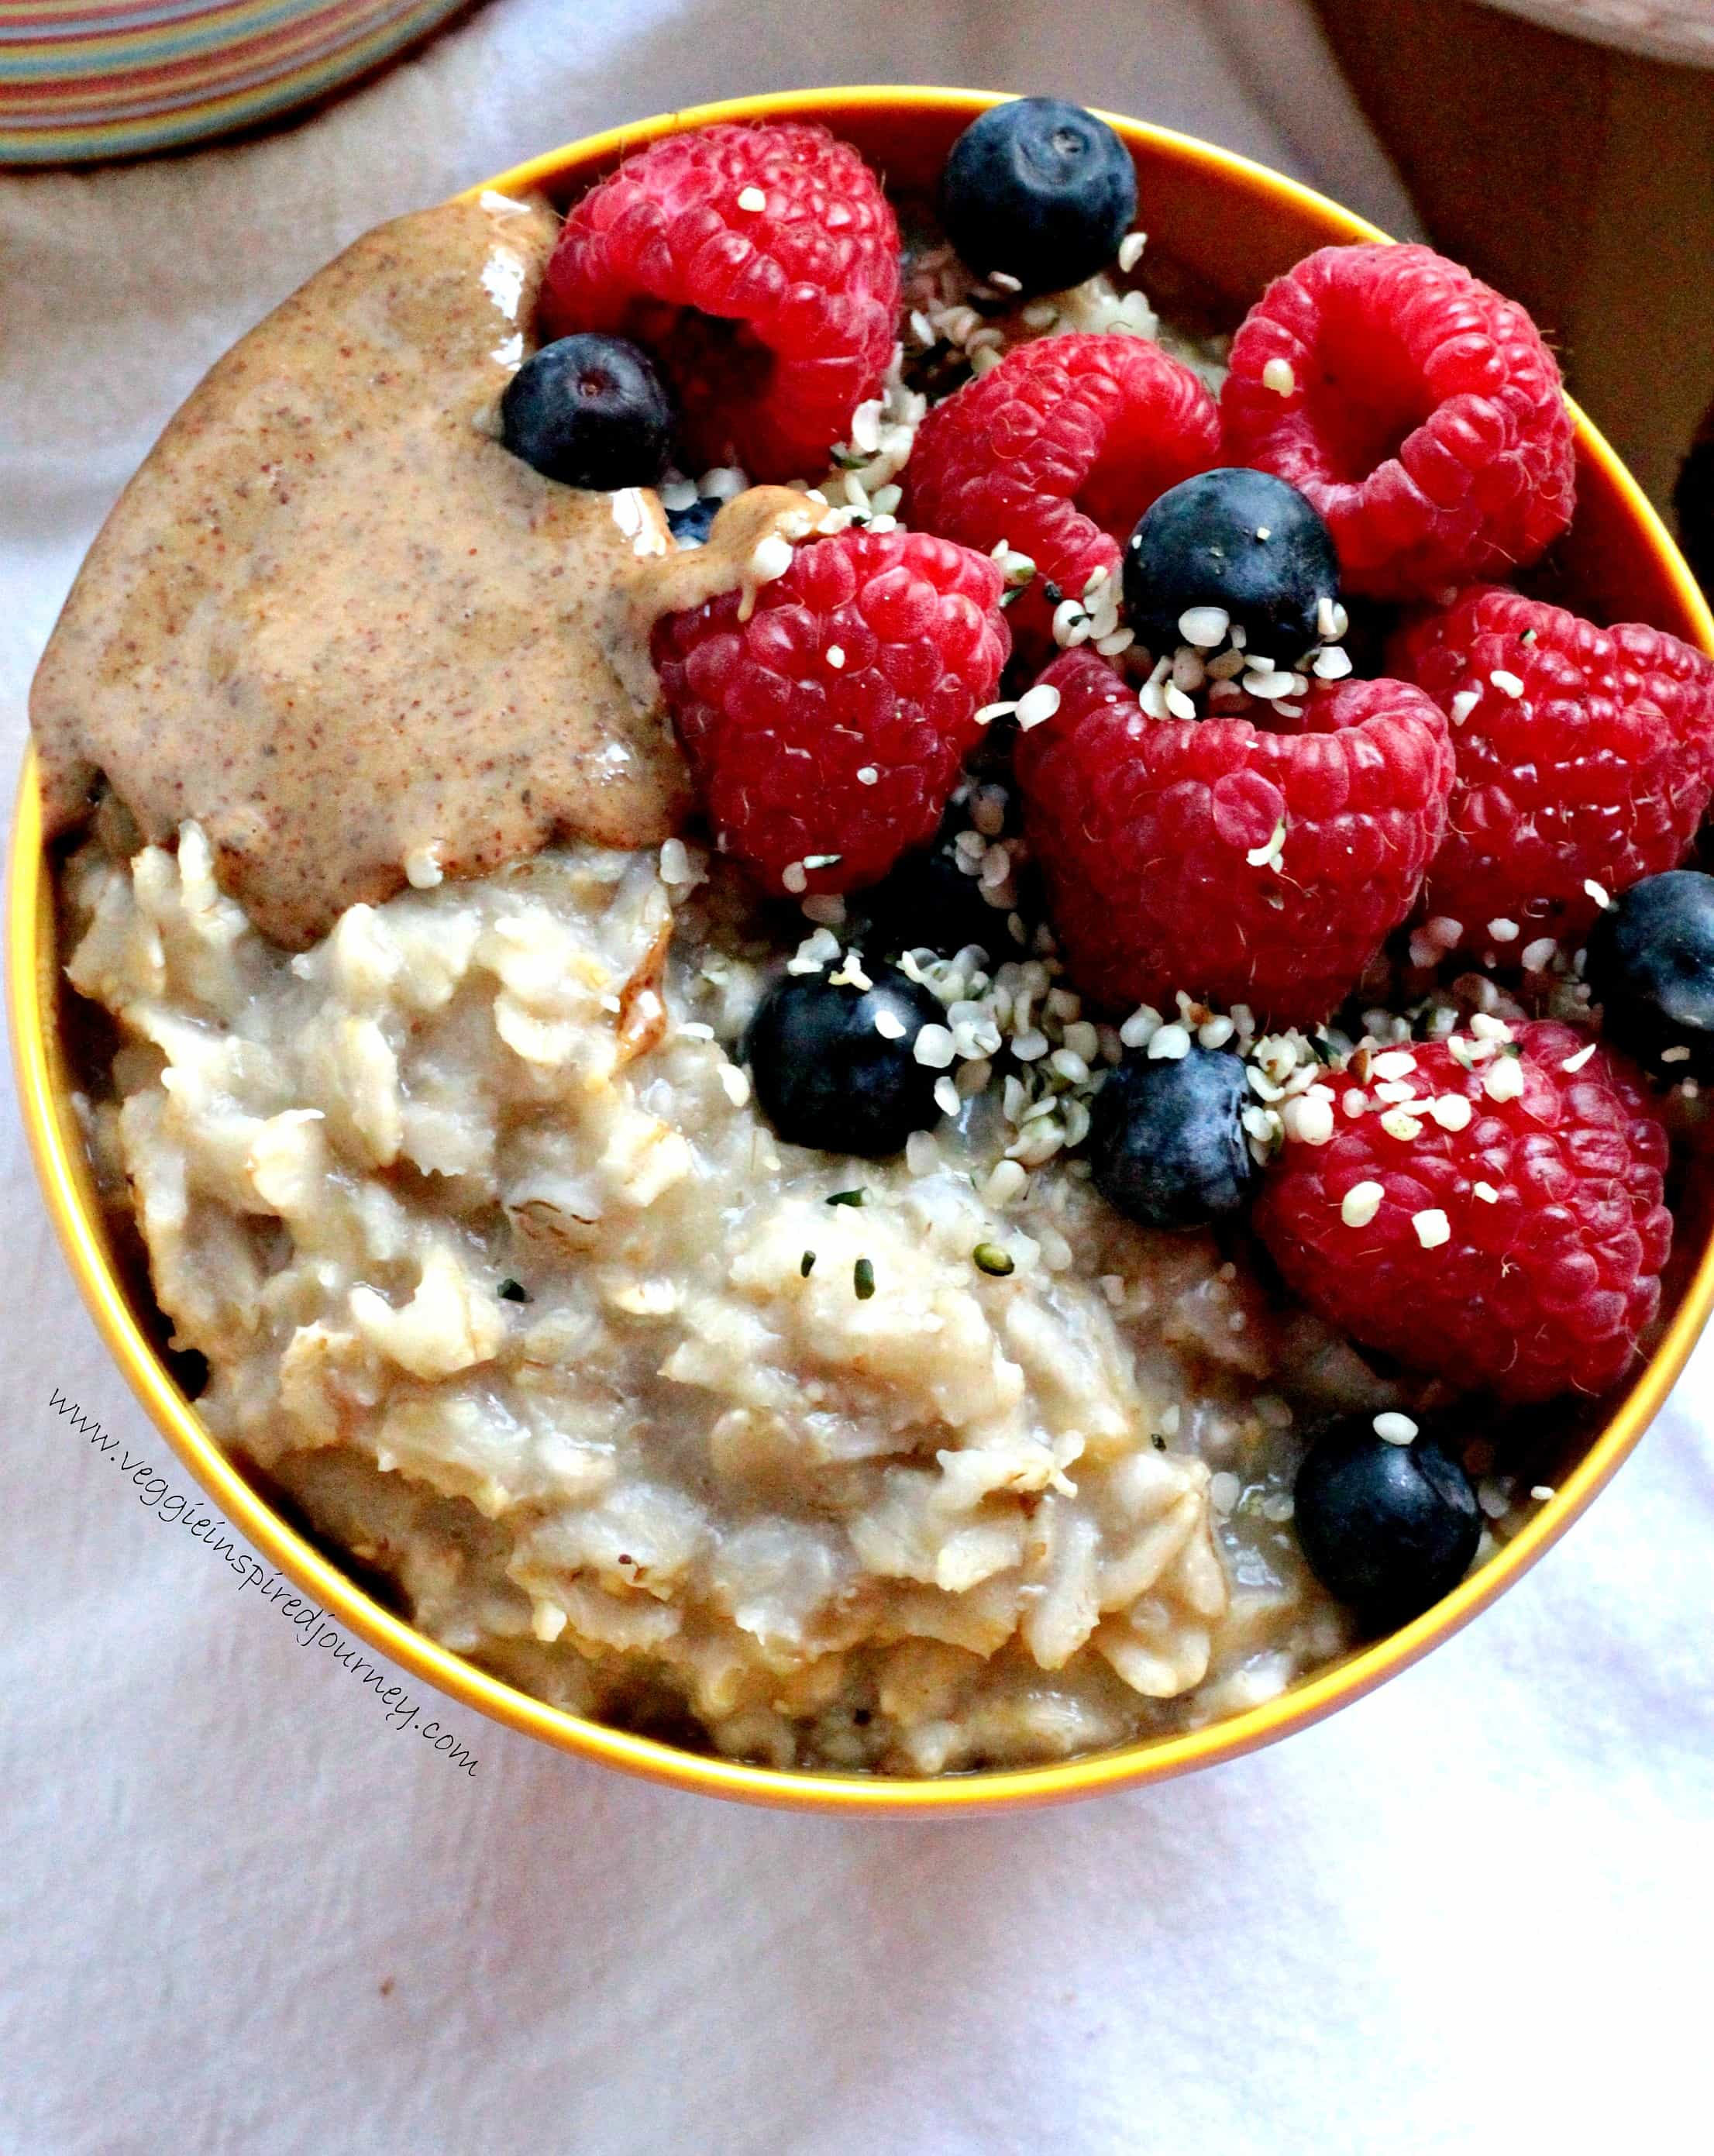 Easy, Sweet, Creamy, Customizable Healthy Oatmeal